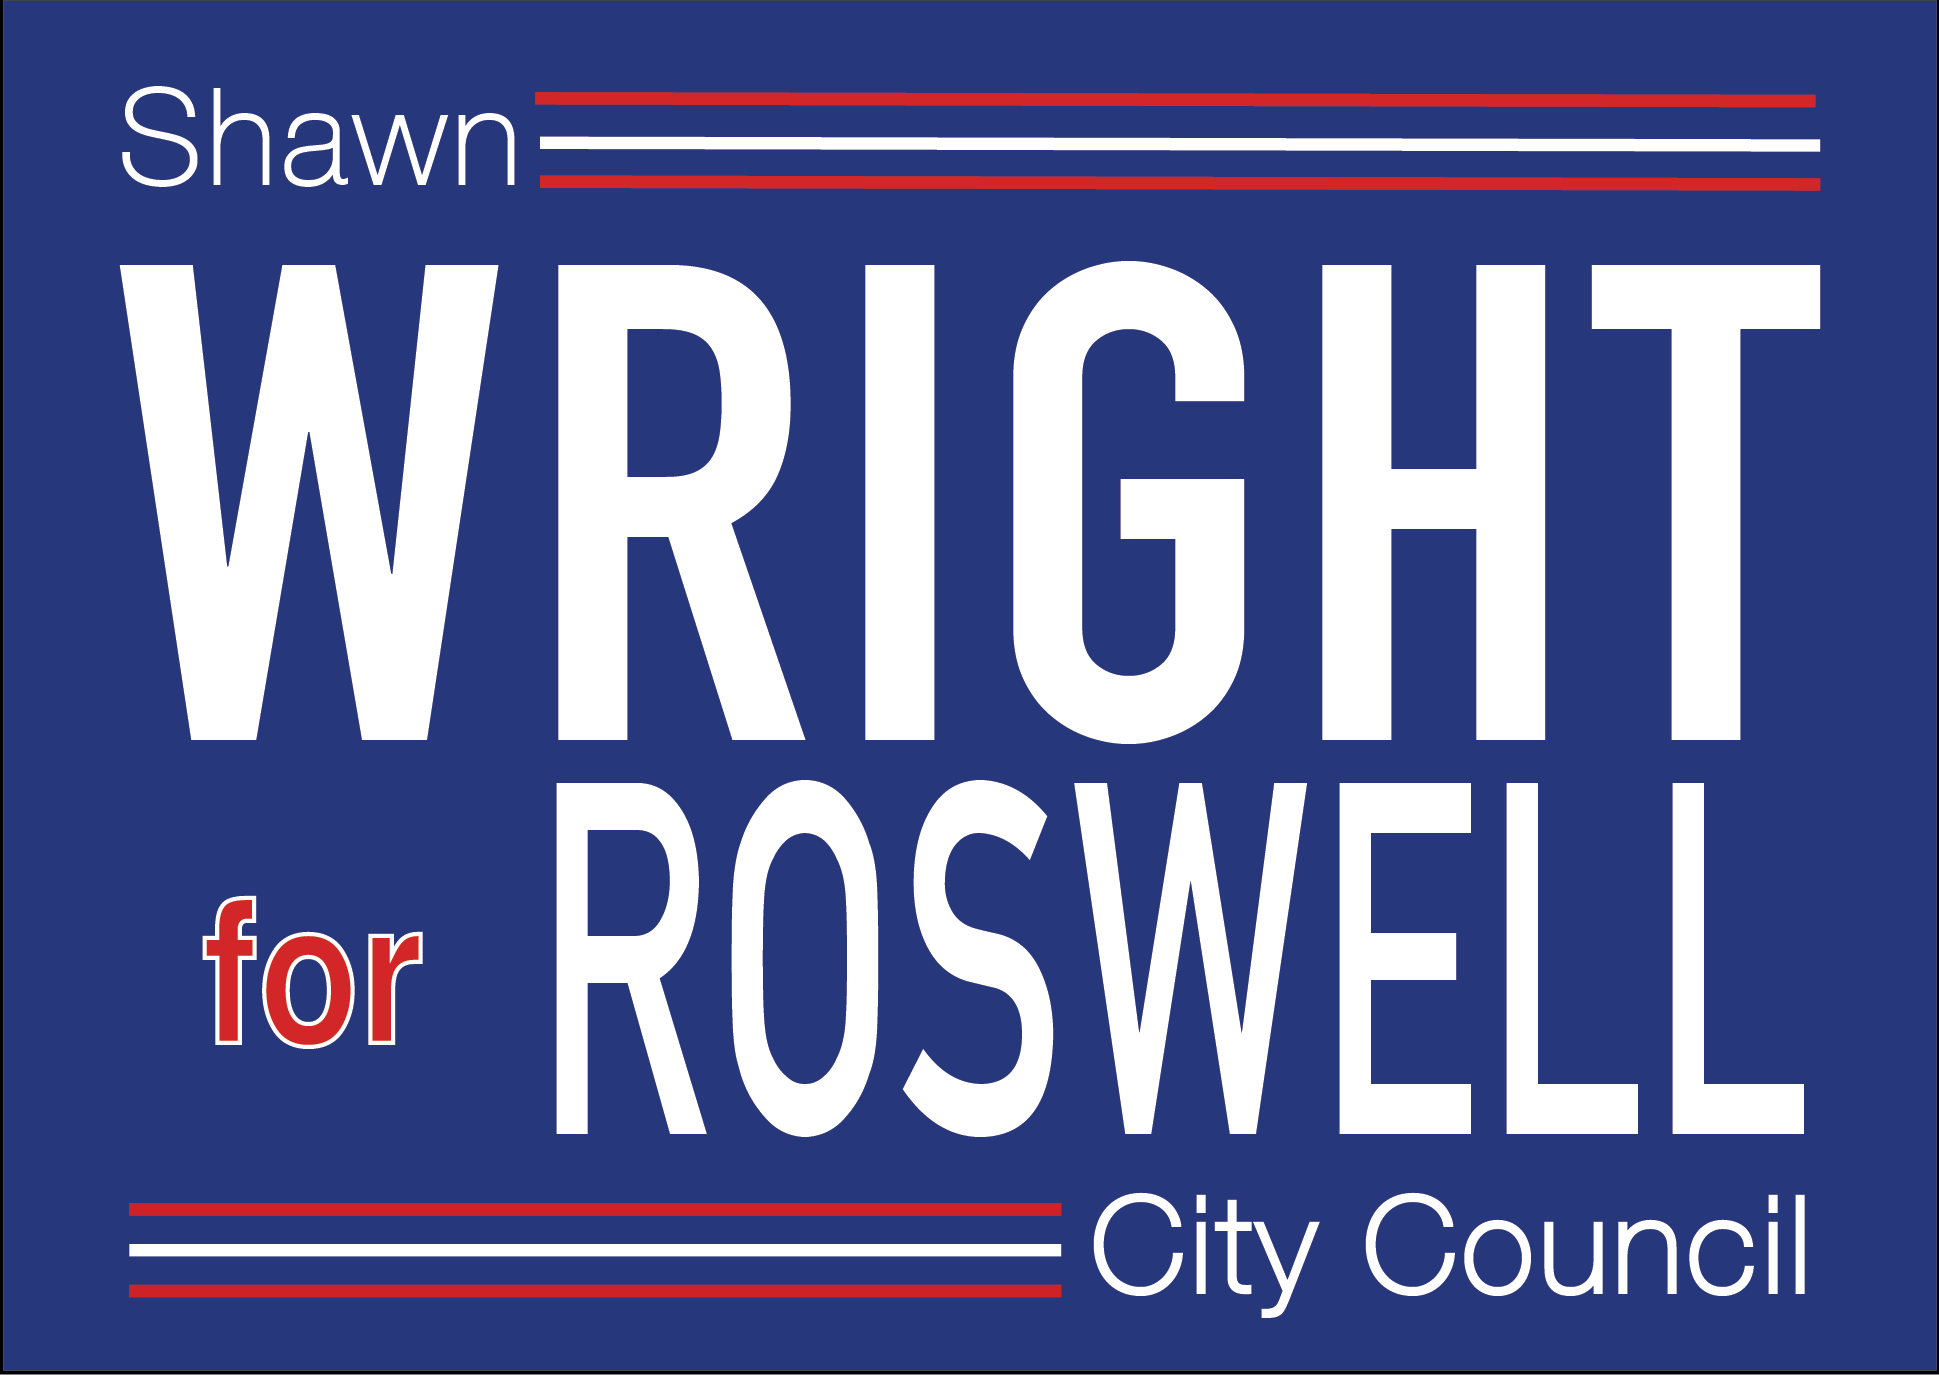 Shawn Wright for Roswell City Council